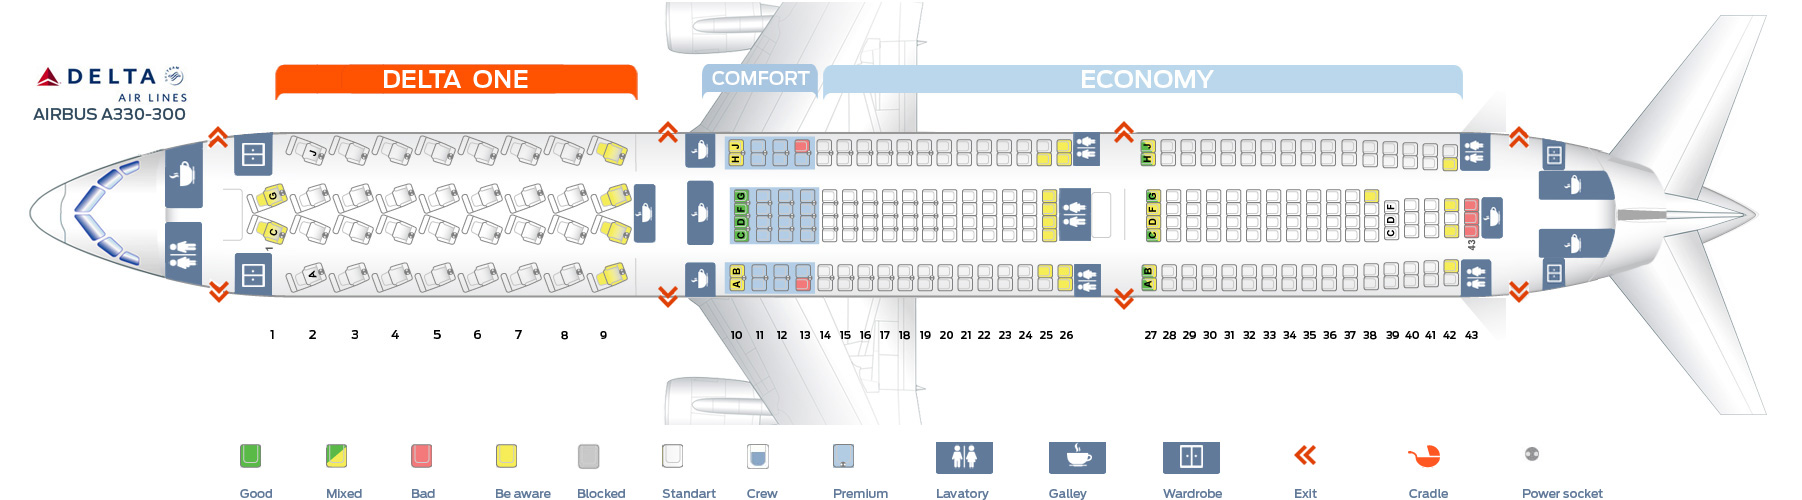 A330 300 Seat Map Seat map Airbus A330 300 Delta Airlines. Best seats in plane